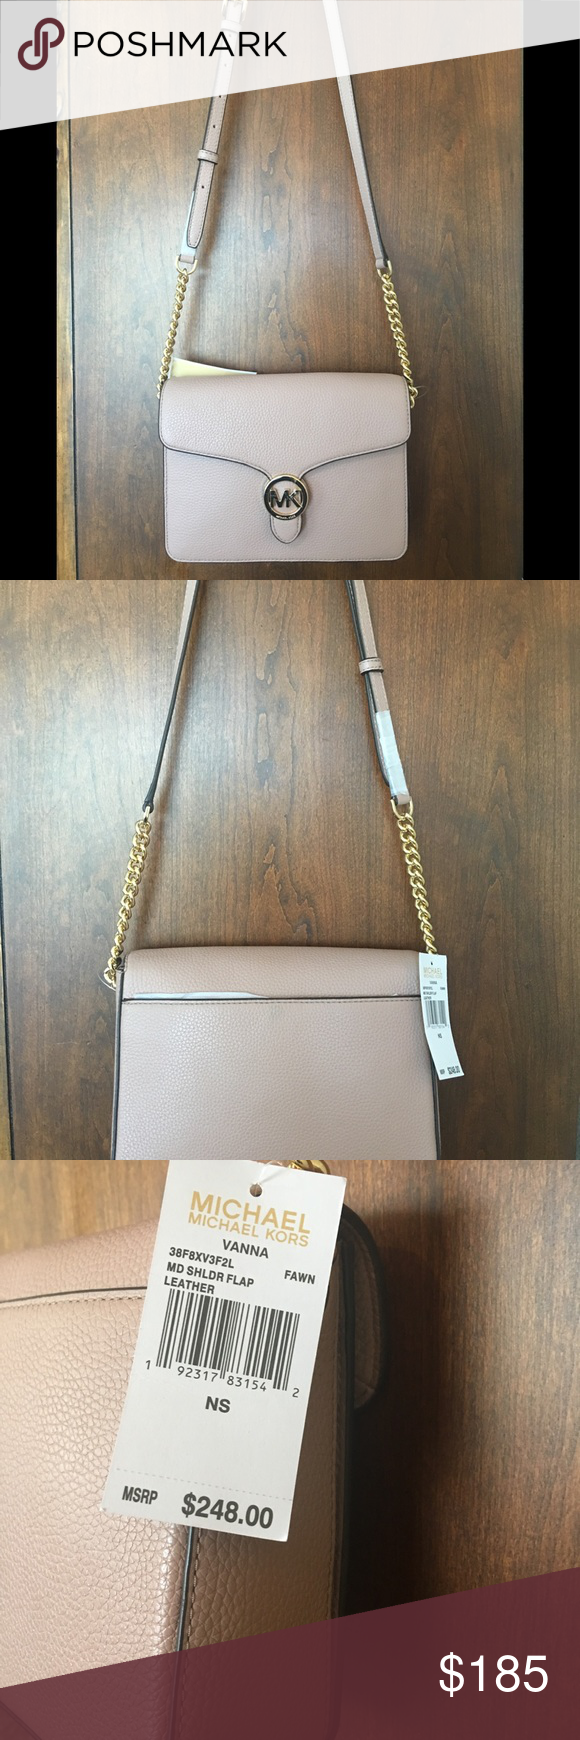 fdecf729f100 Michael Kors VANNA Med. Shoulder Flap Leather Michael Kors Medium Shoulder  Flap Leather Crossbody in Fawn (Light Mauve Dark Blush) wit…